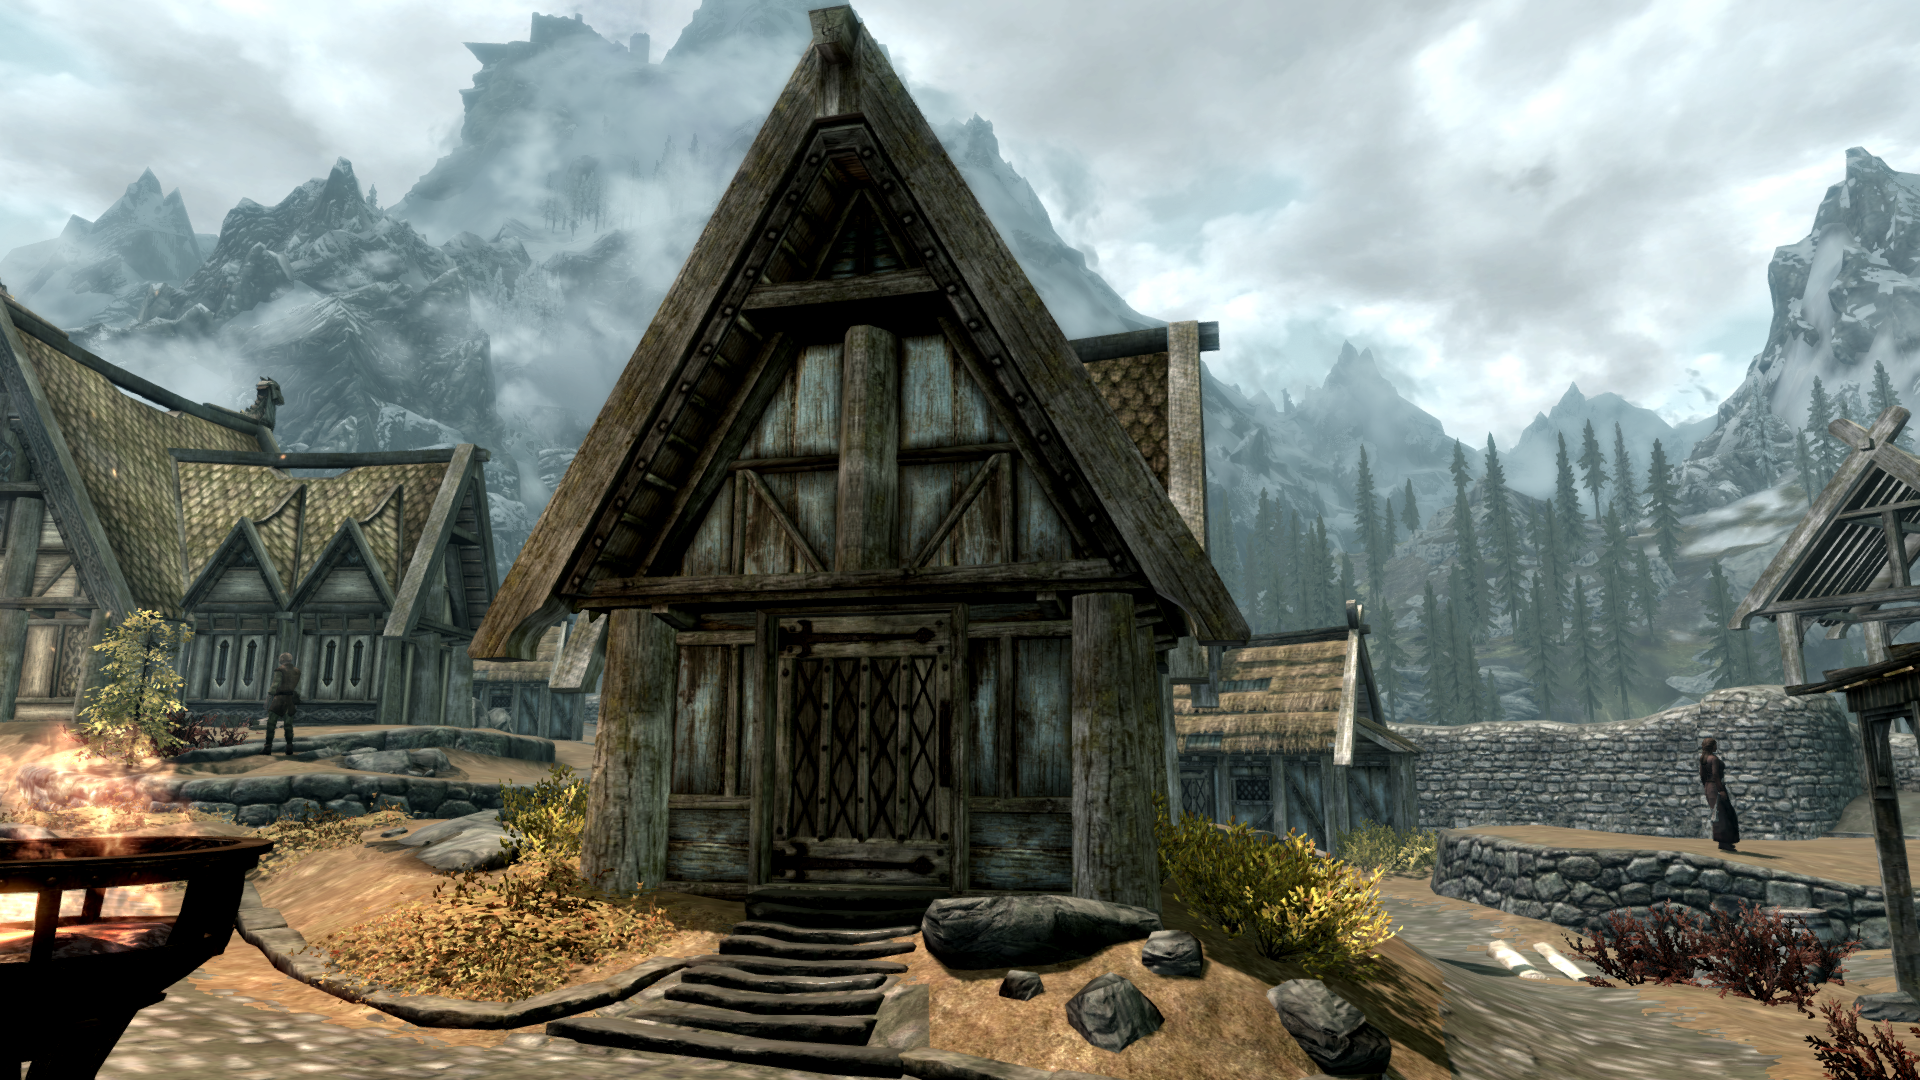 skyrim arkngthamz how to open gate